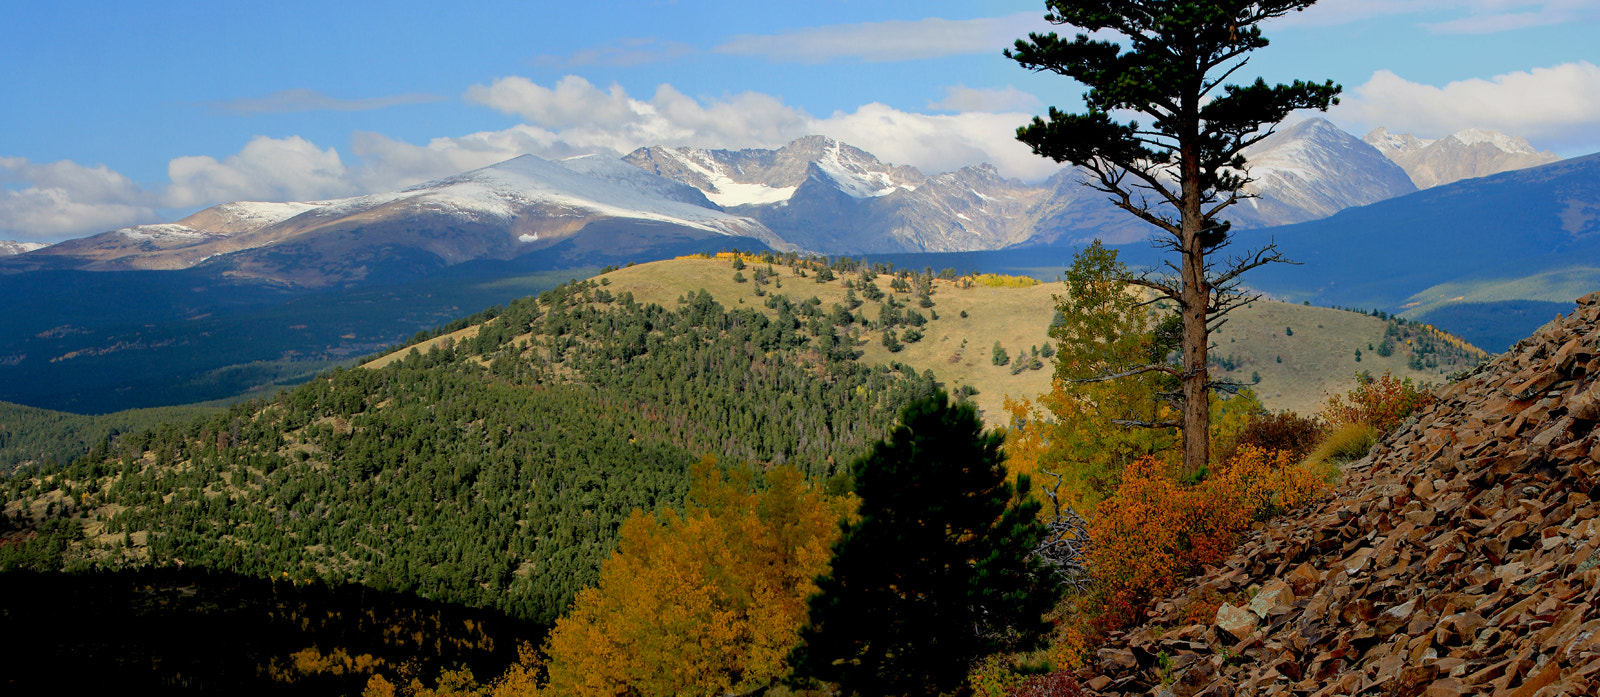 Photograph Continental Divide from Sugarloaf Mountain by Parker Jackson on 500px